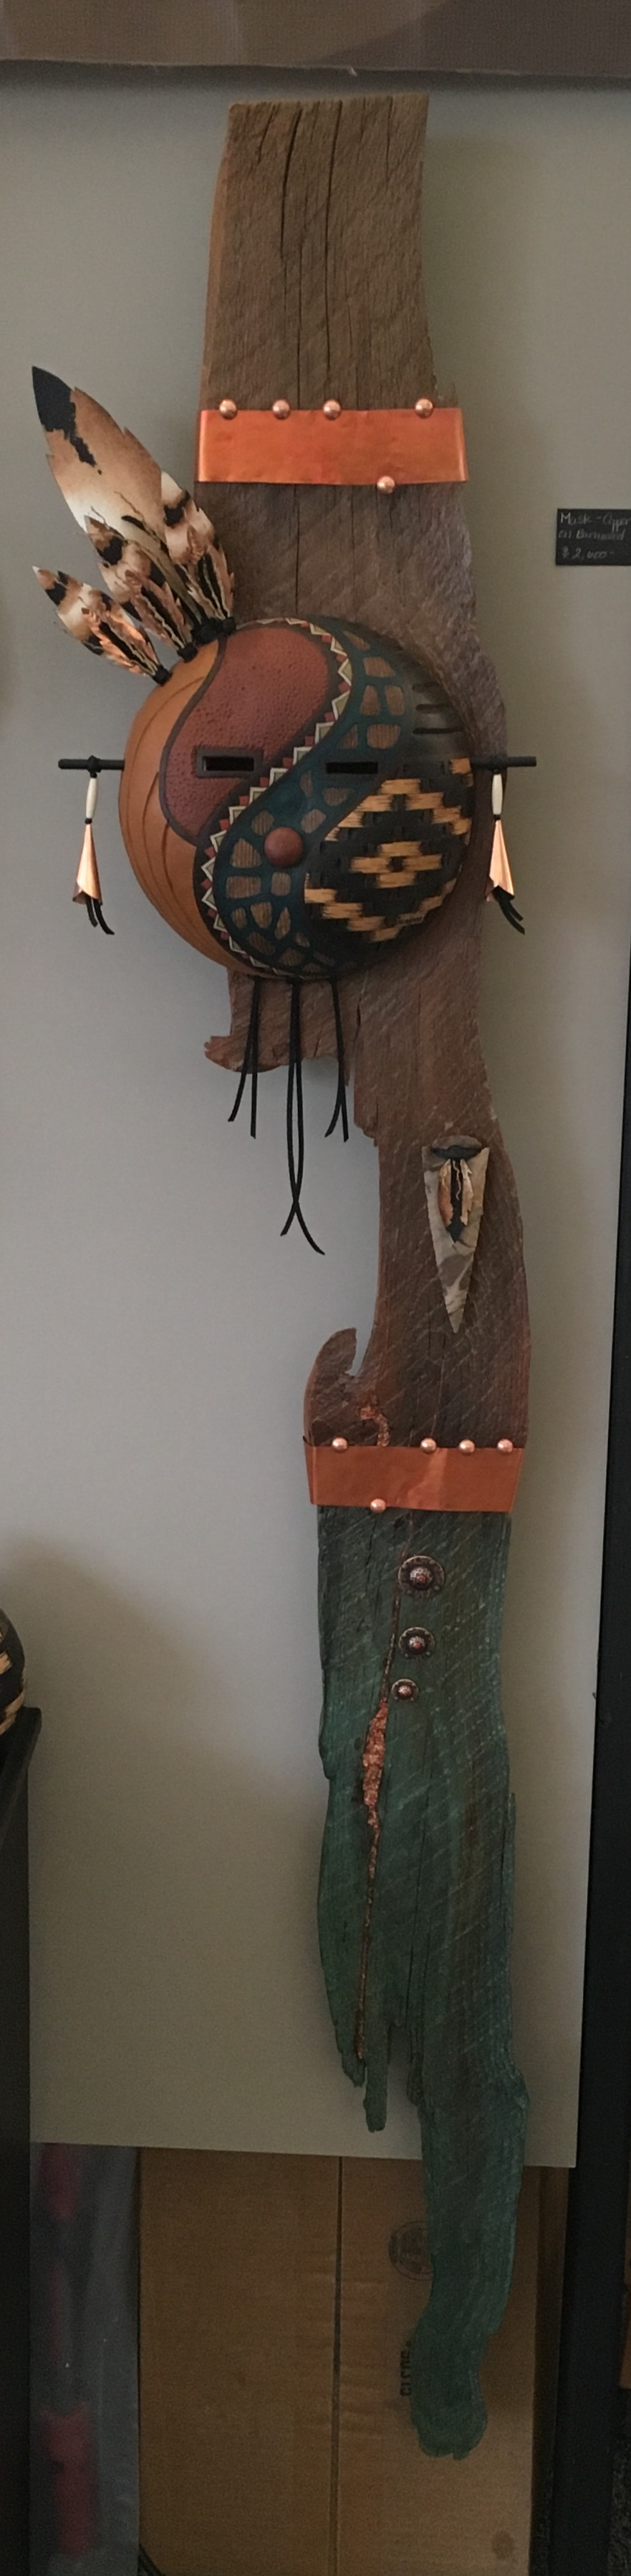 Mask on repurposed barn wood